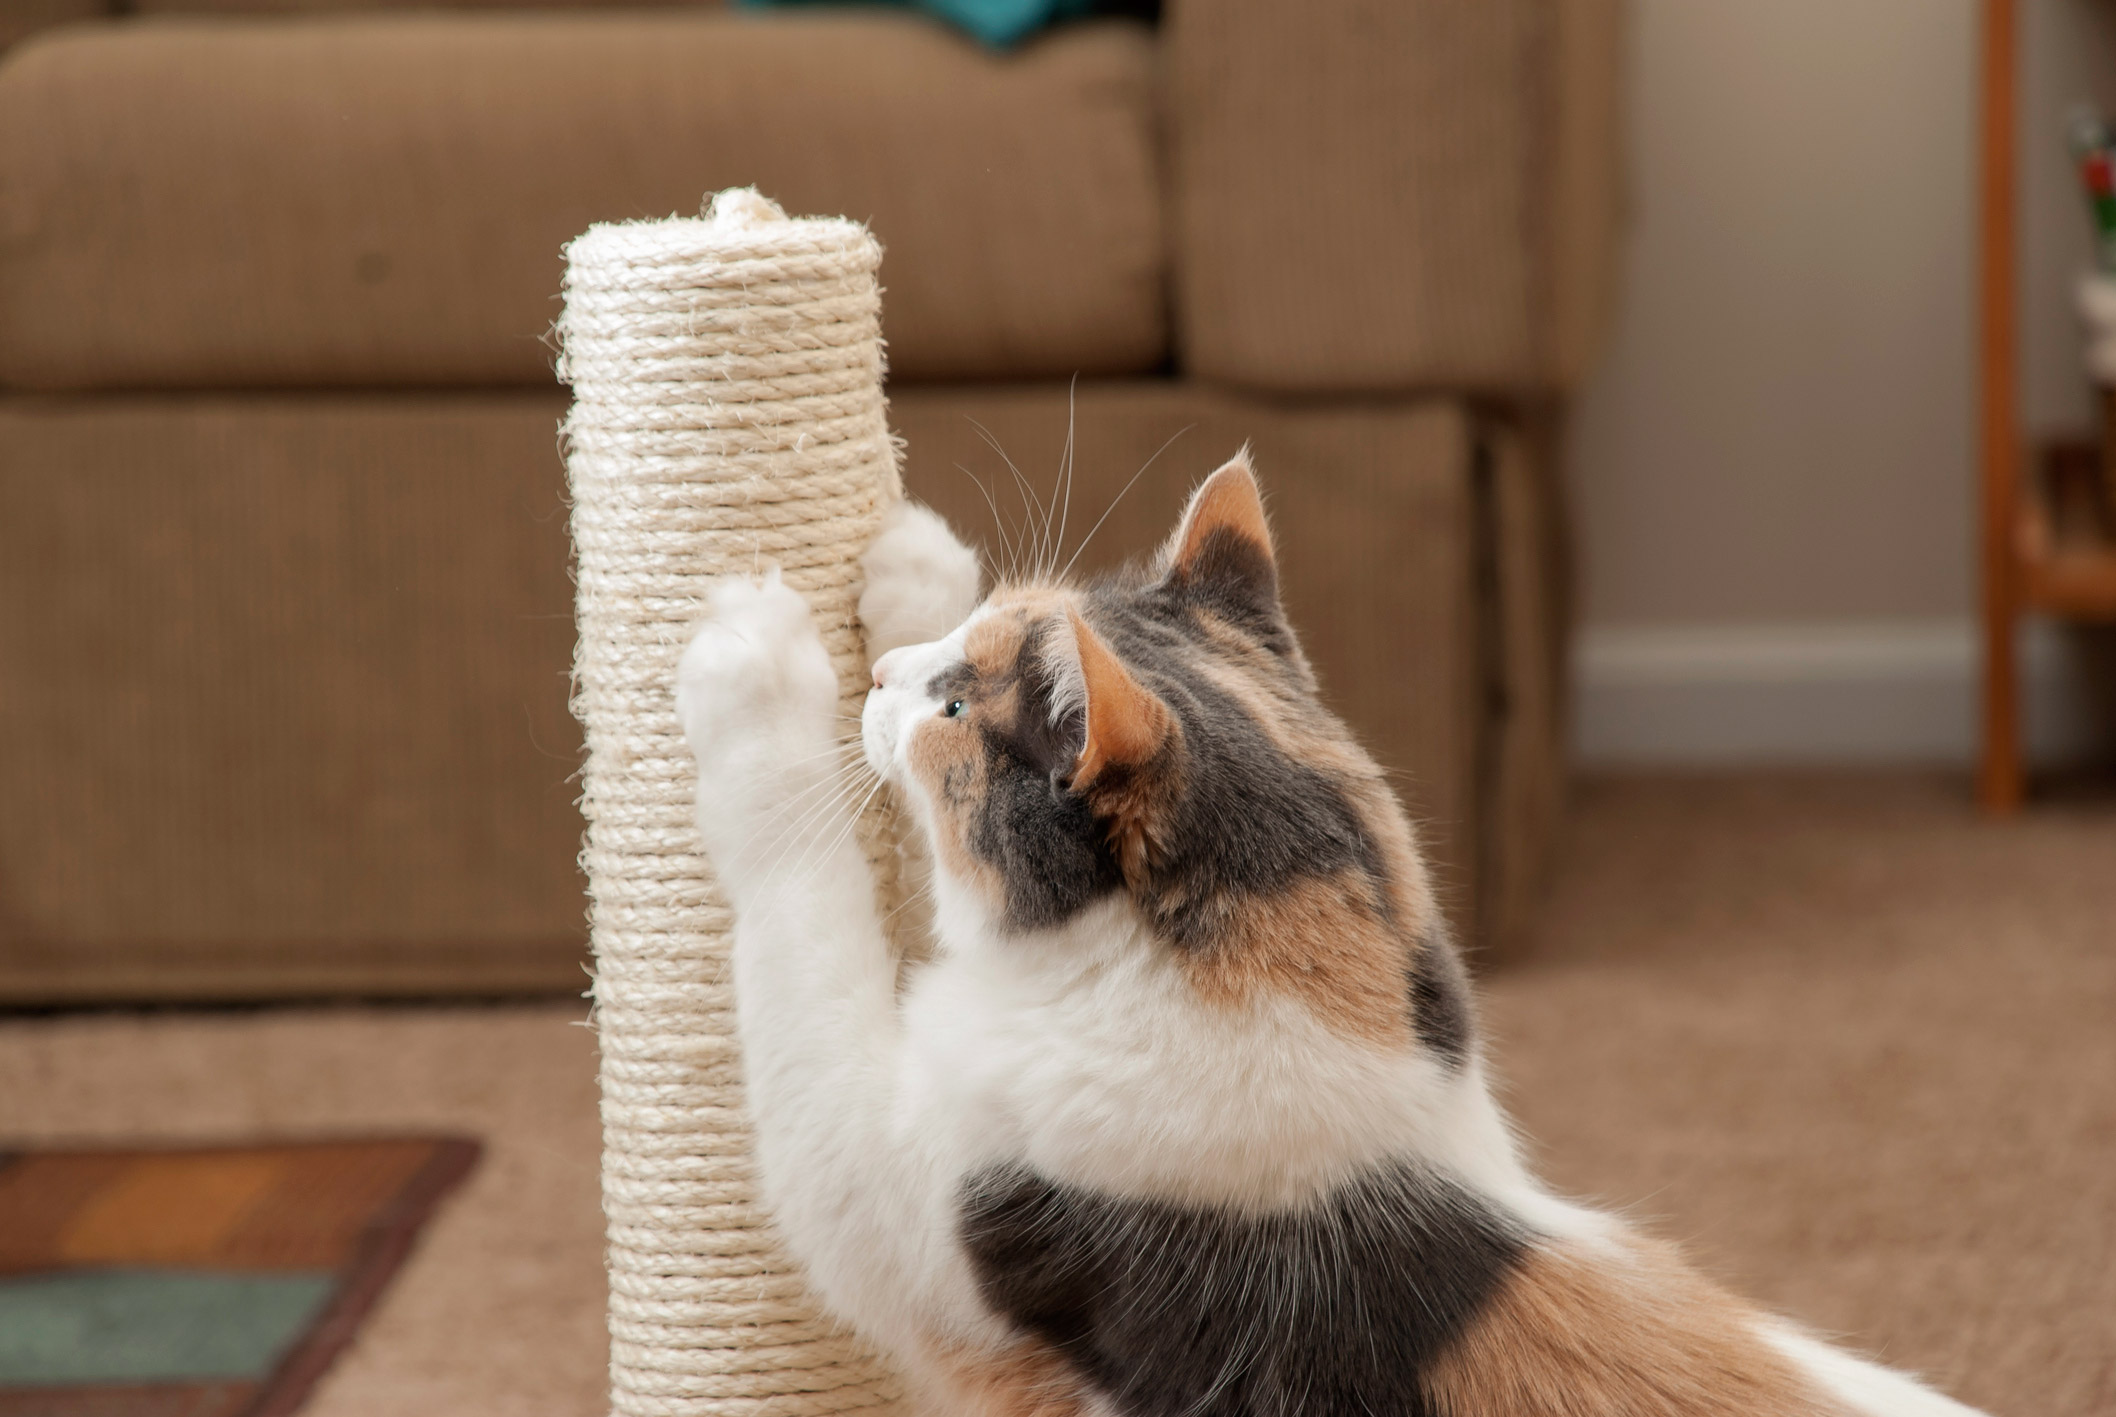 Have your cat scratch a post, not the couch